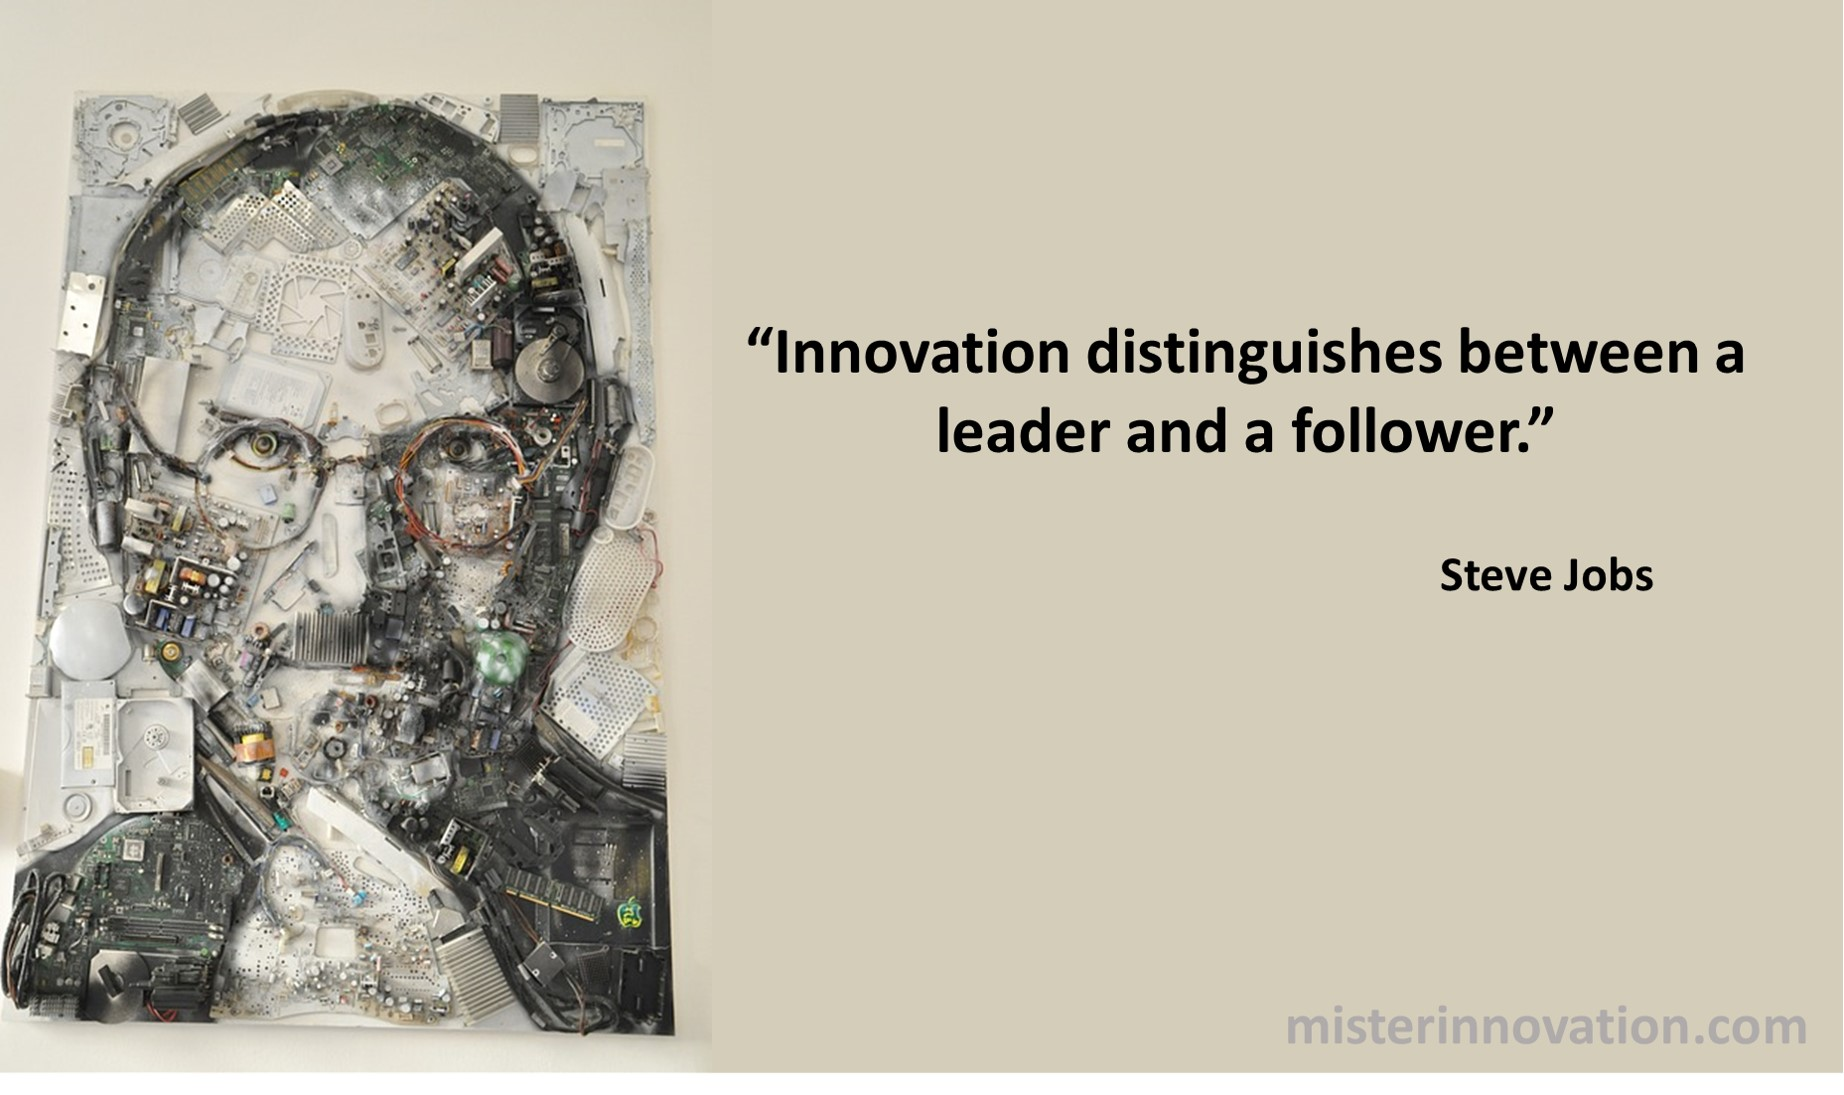 Steve Jobs Quote on Innovation Leaders and Followers